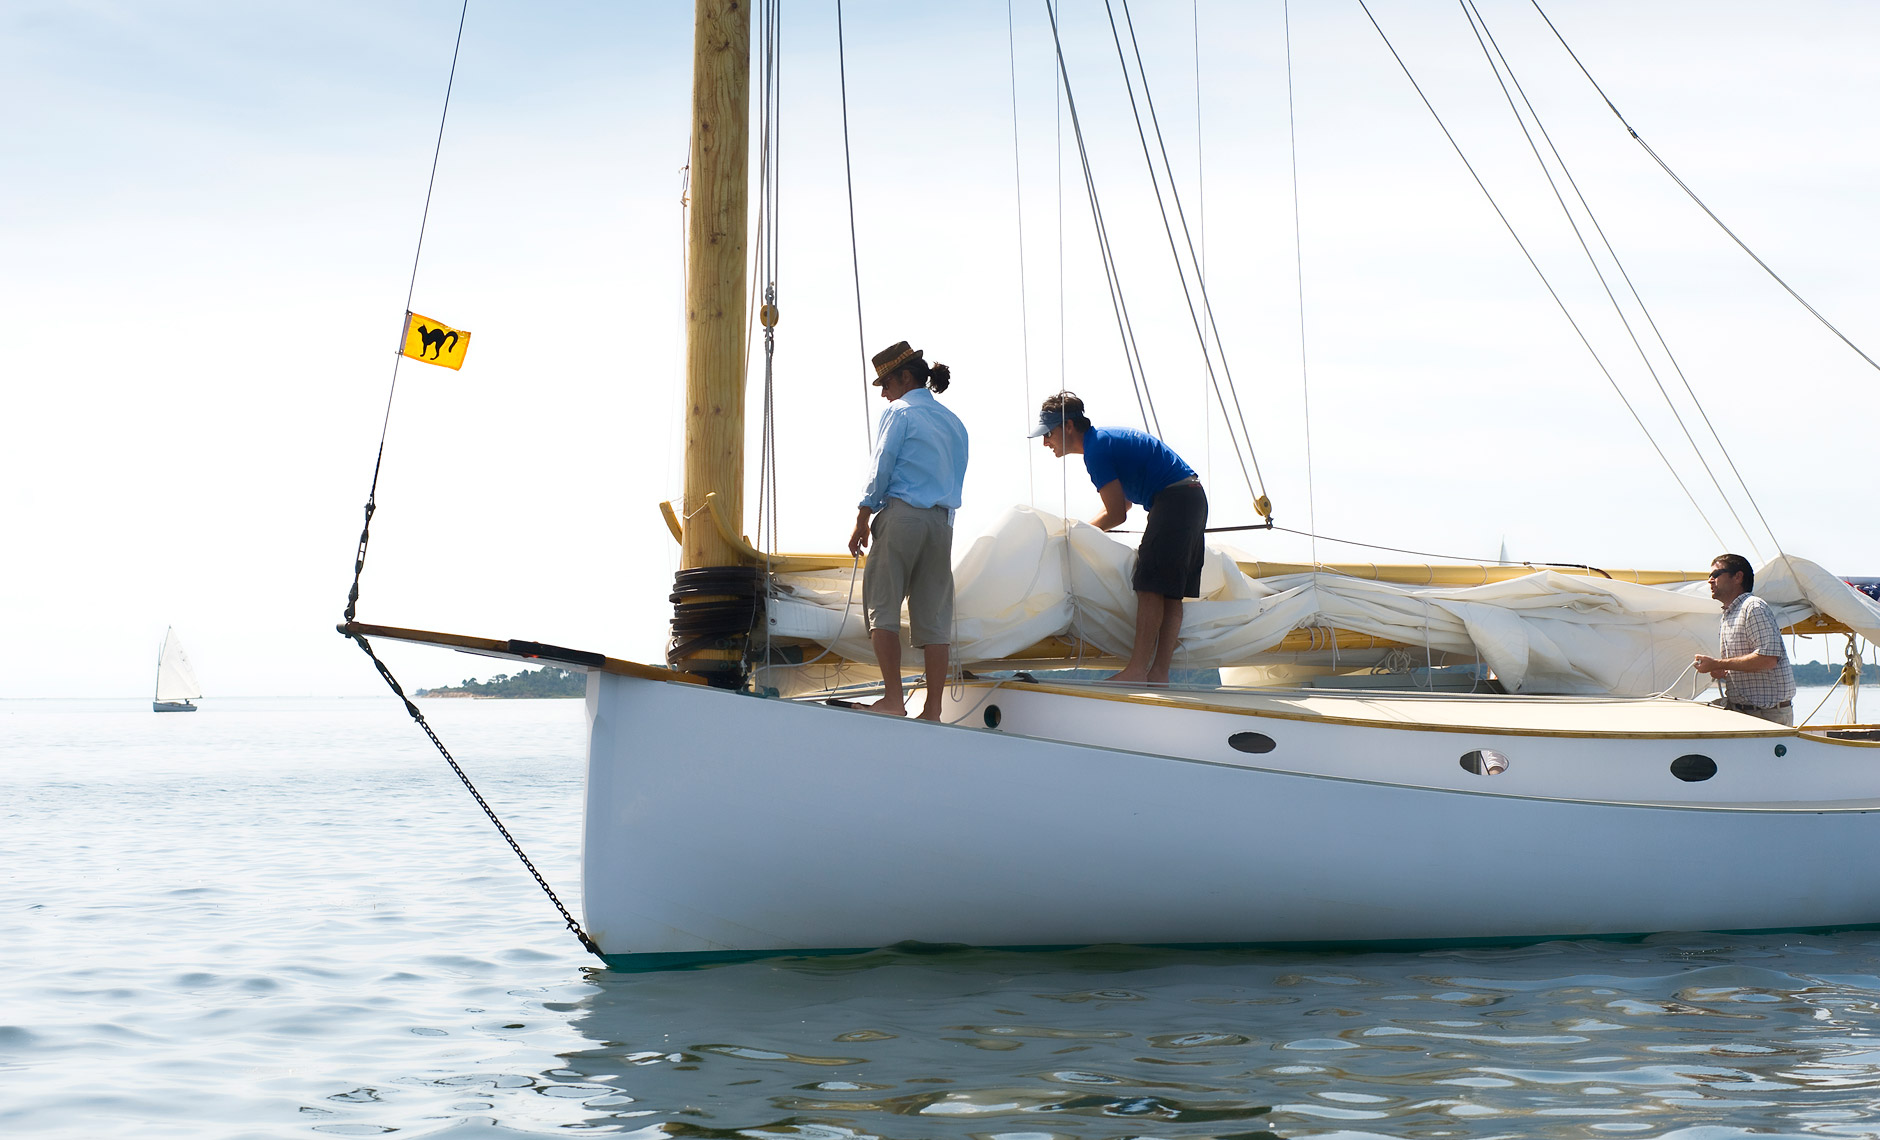 Crew of Large catboat named Kathleen in Pleasant Bay, Cape Cod